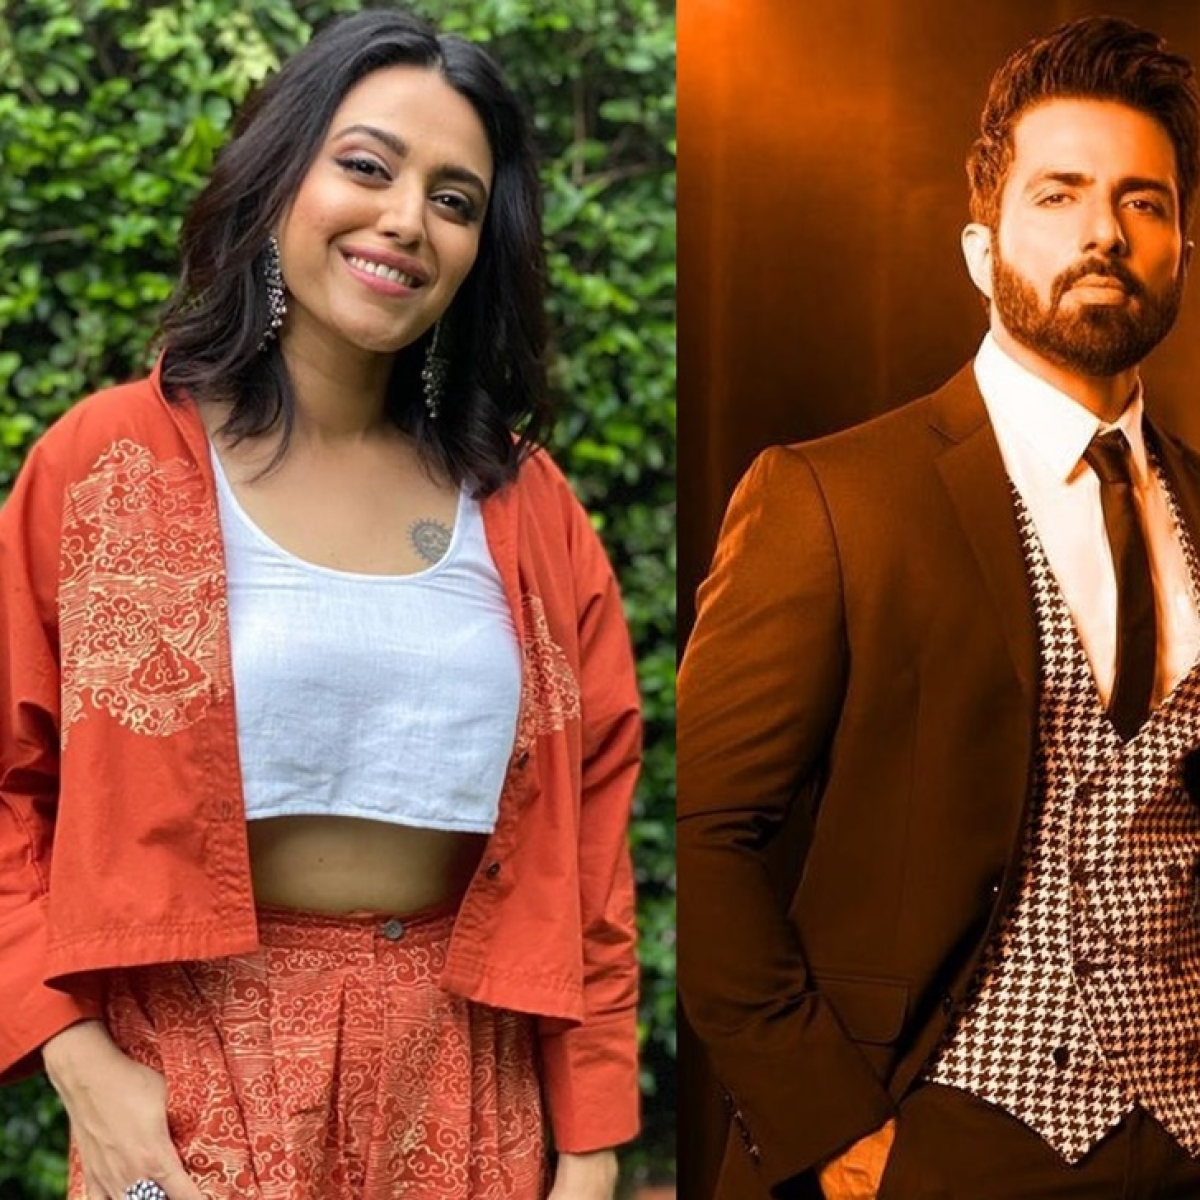 Sonu Sood, Swara Bhasker and other celebs express their love for Mumbai after Kangana compares the city to PoK